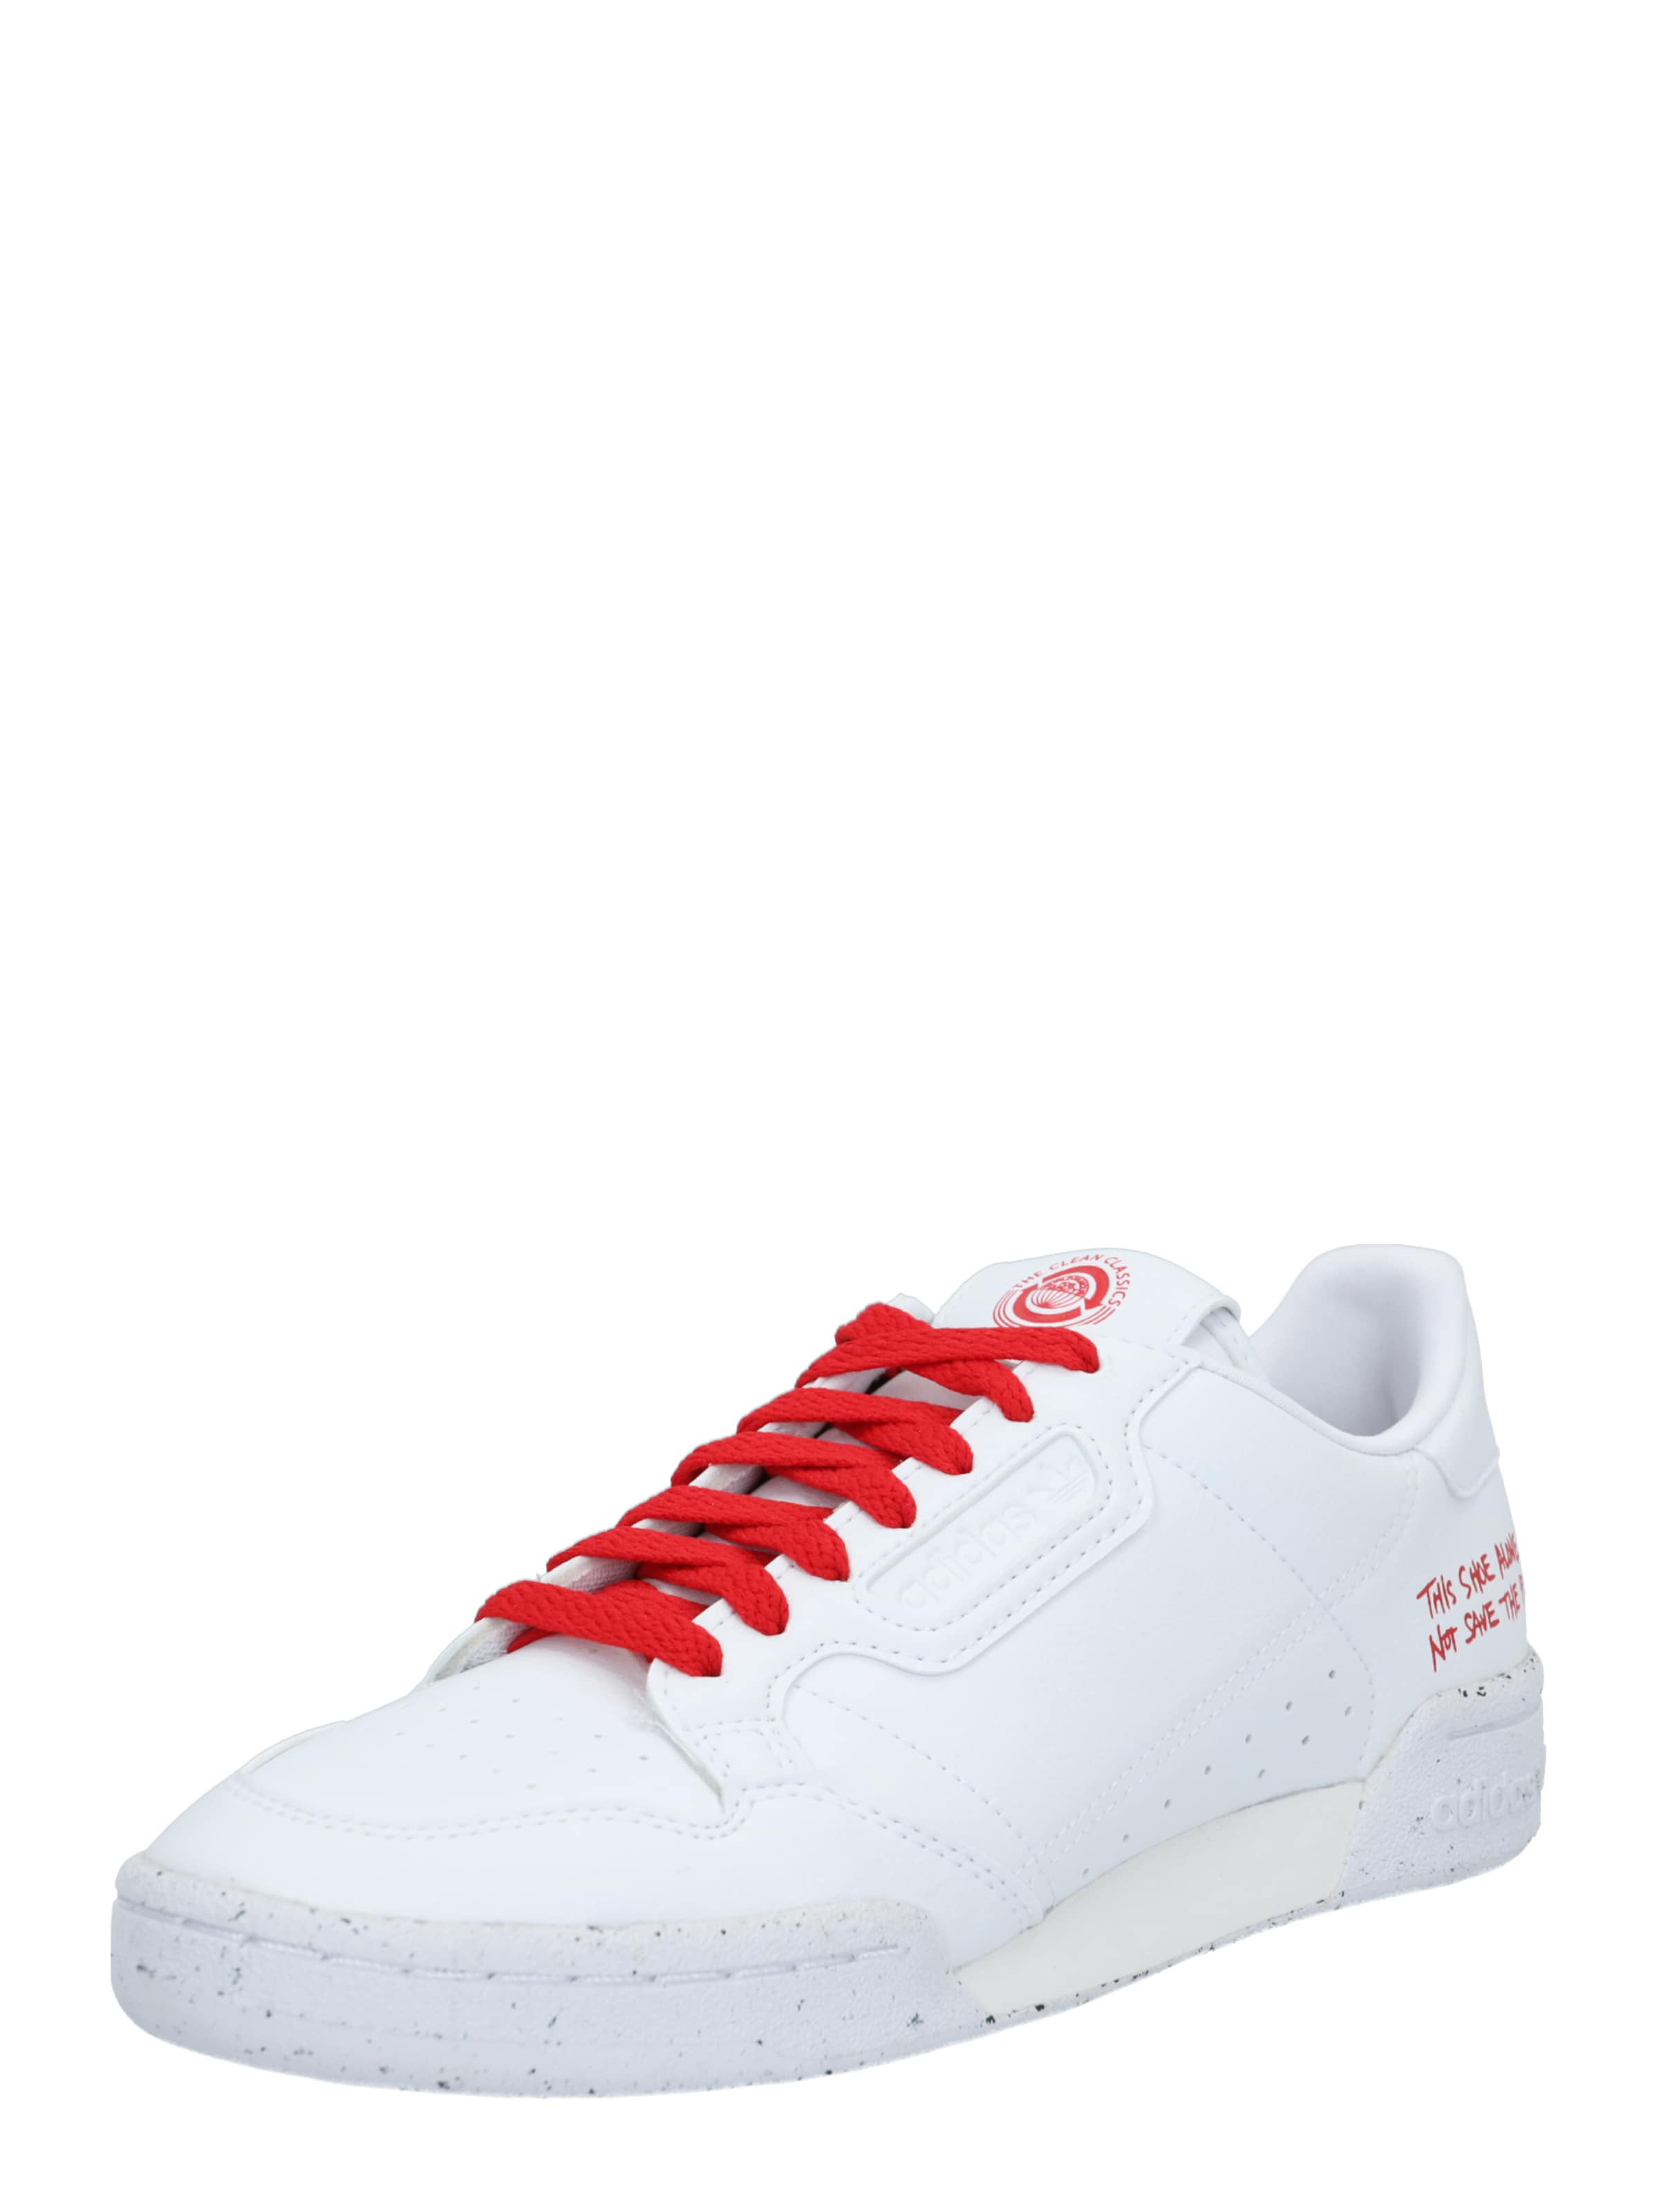 ADIDAS ORIGINALS Sneaker 'CONTINENTAL 80' in rot / weiß